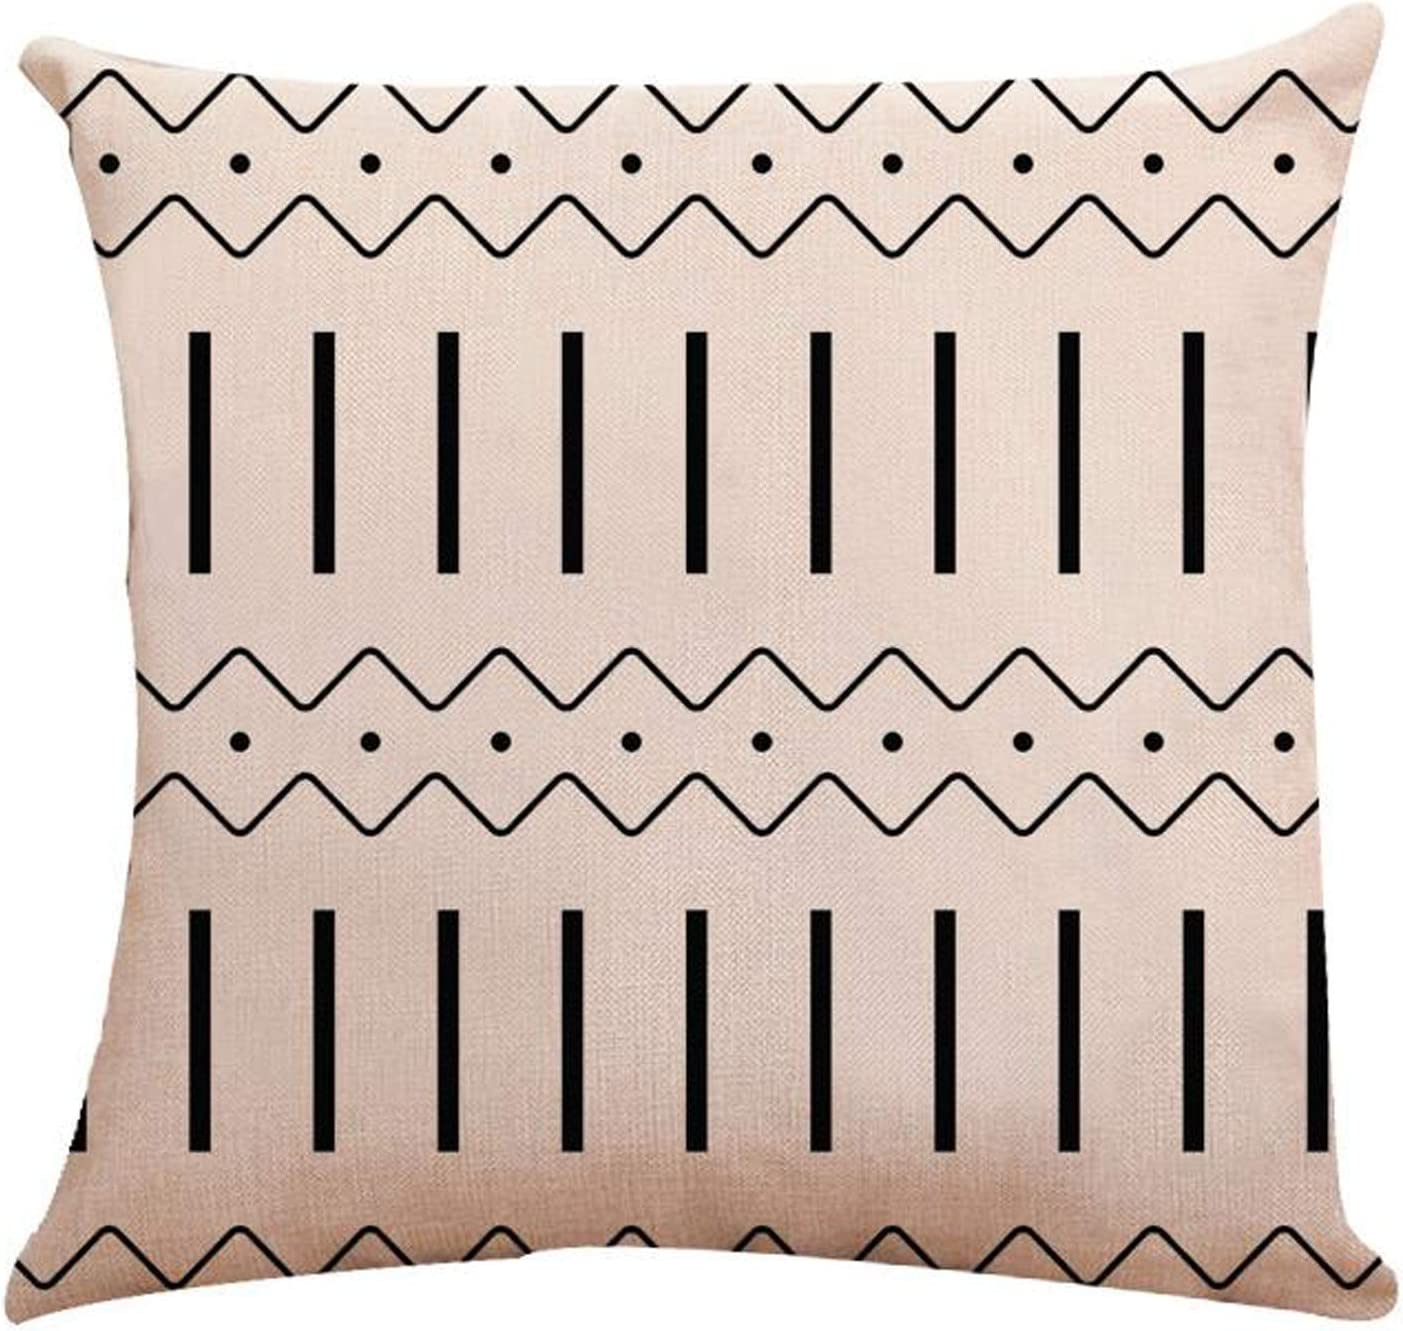 Pillow Covers 18x18 Sofa Throw Pillow Covers Decorative Outdoor Linen Pillow Covers Set of 4 for Couch Sofa Bed and Car 18x18 Inch 45x45 cm Black, 18x18,Set of 4